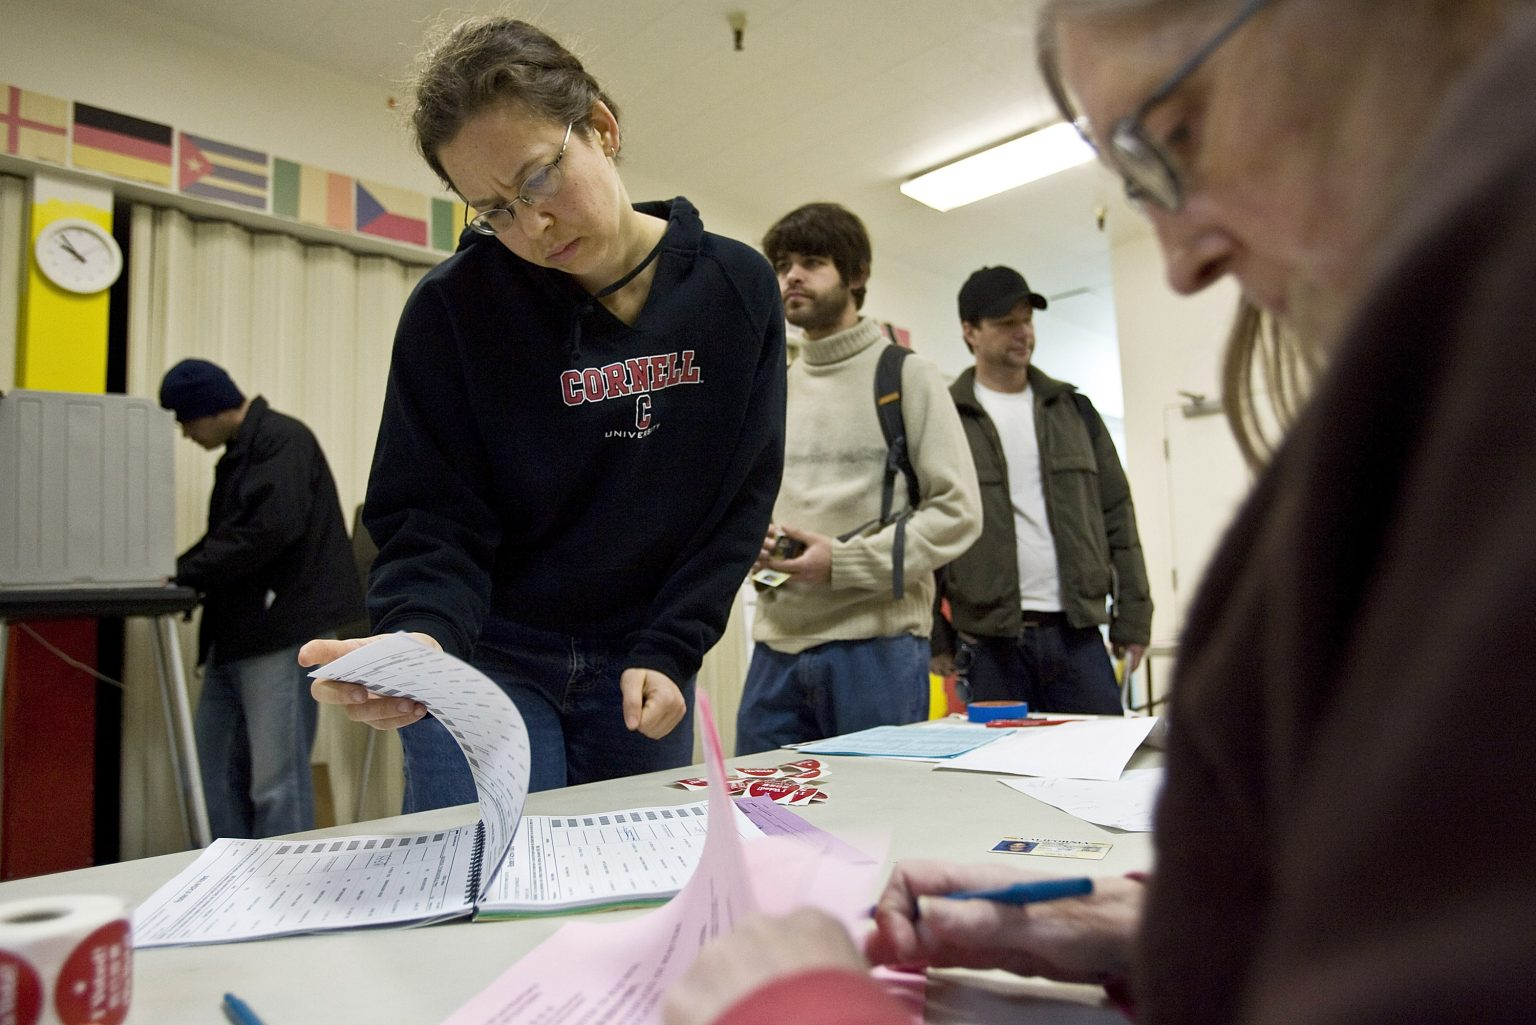 30 states use this technology against voter fraud — so should Kansas and the other 19